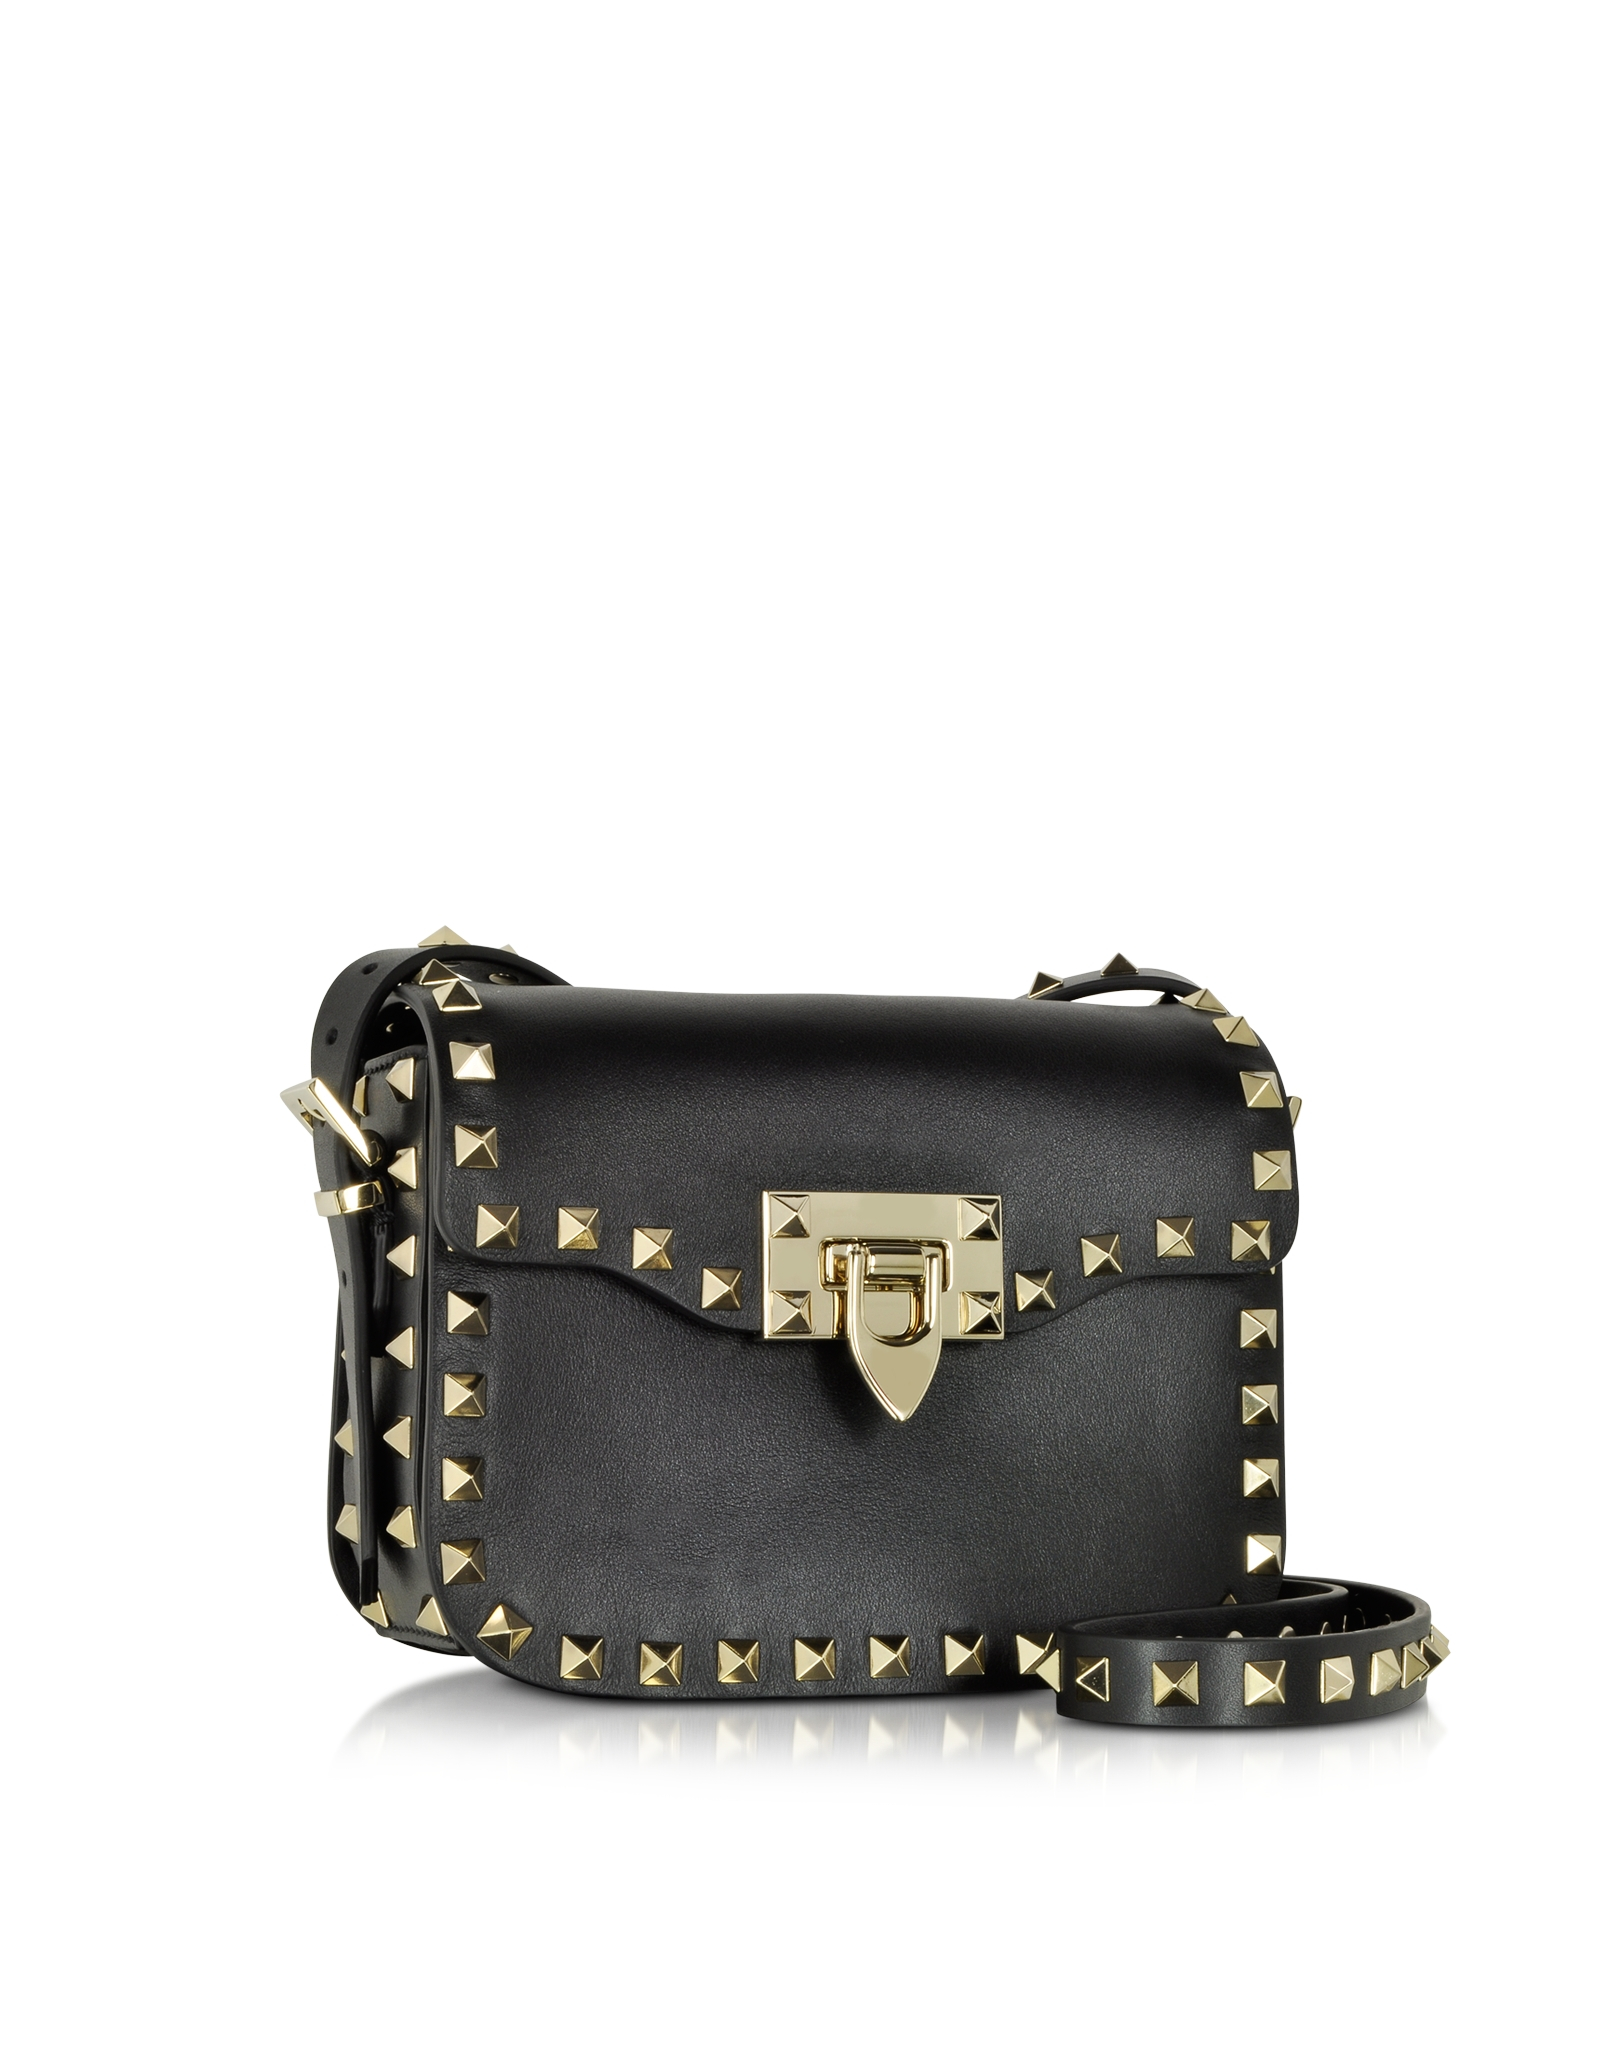 Valentino Rockstud Black Leather Small Shoulder Bag in Black | Lyst